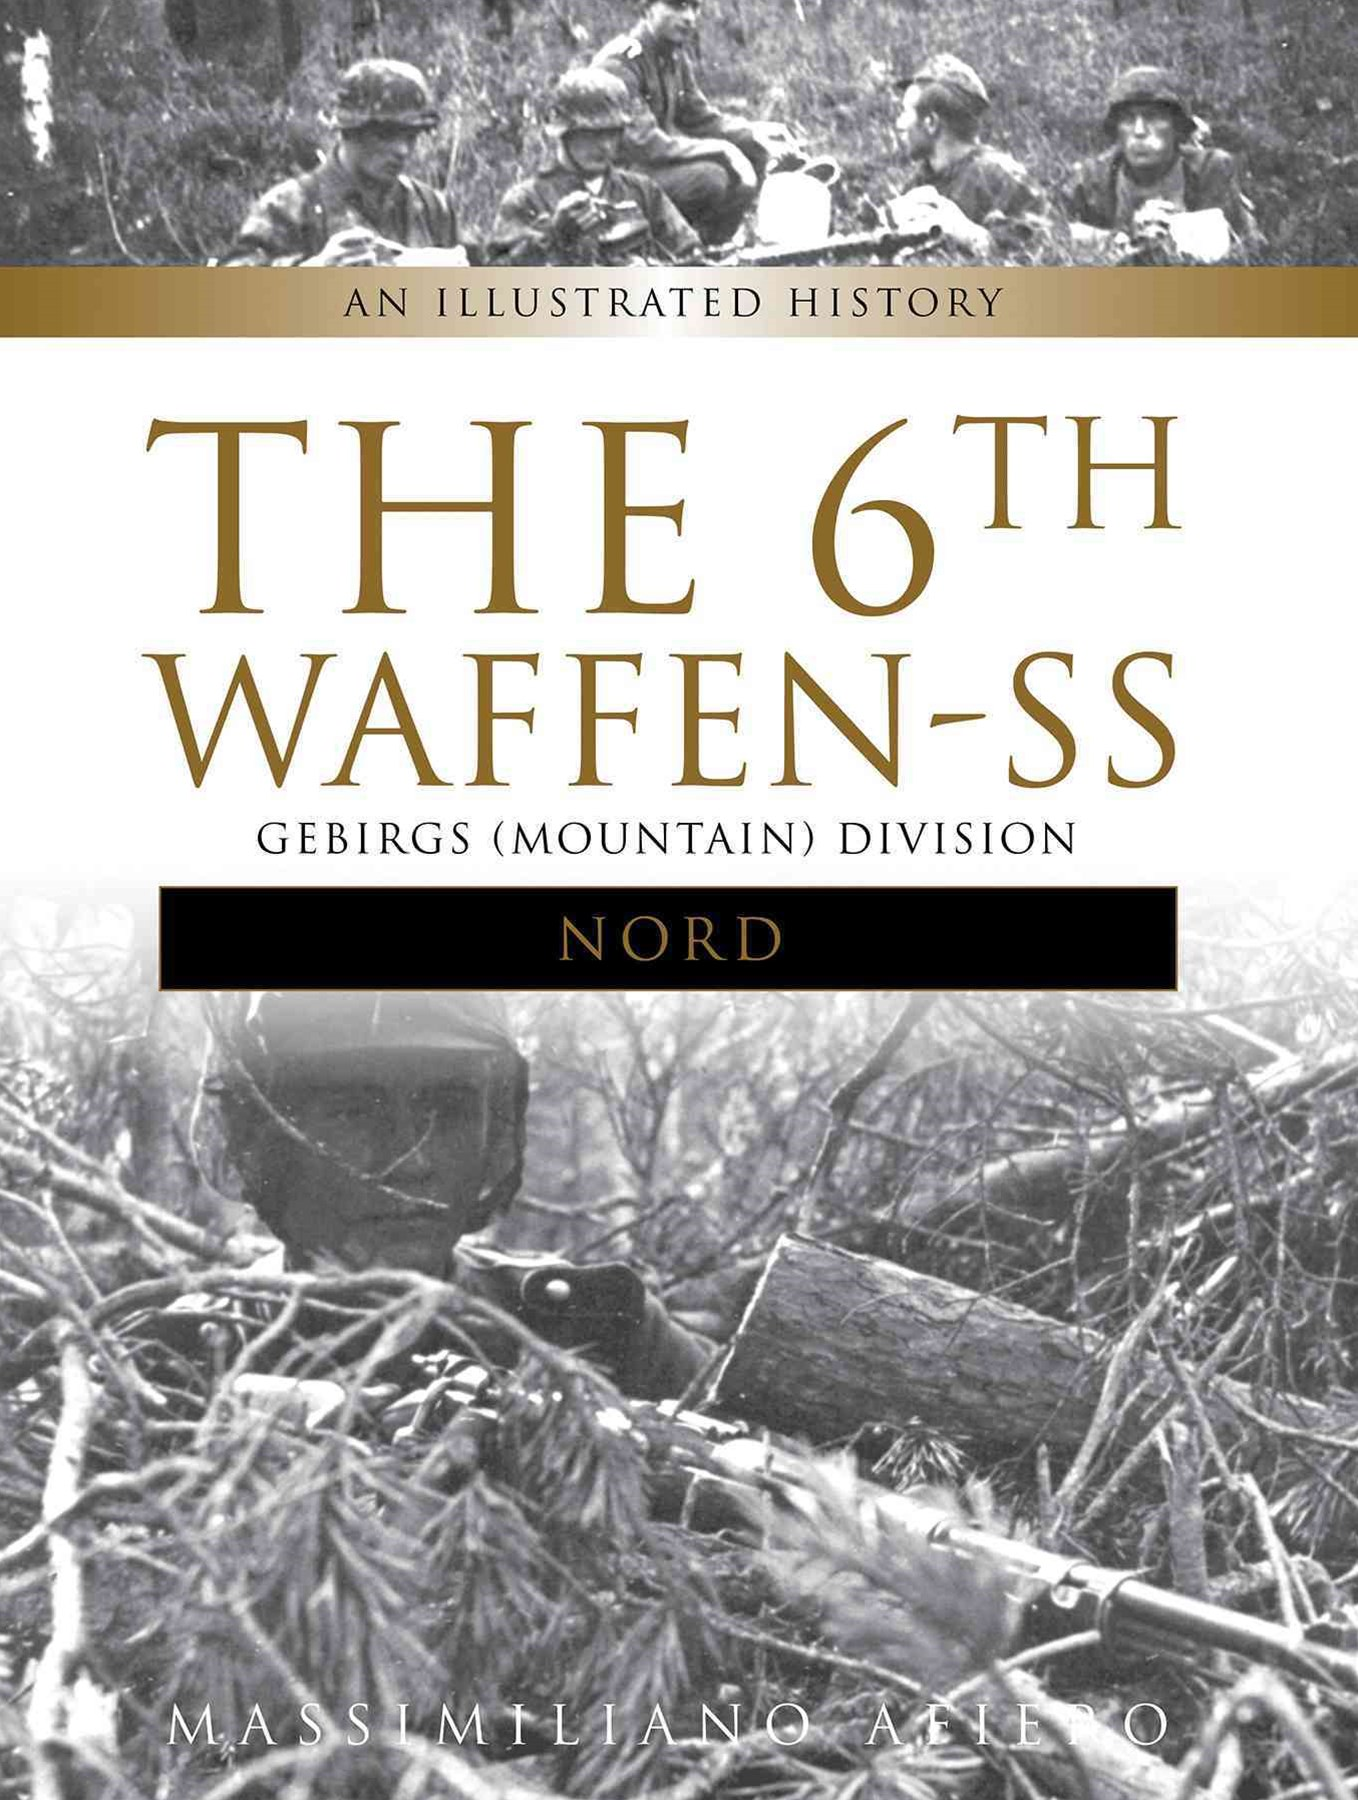 6th Waffen-SS Gebirgs (Mountain) Division &quote;Nord&quote;: An Illustrated History